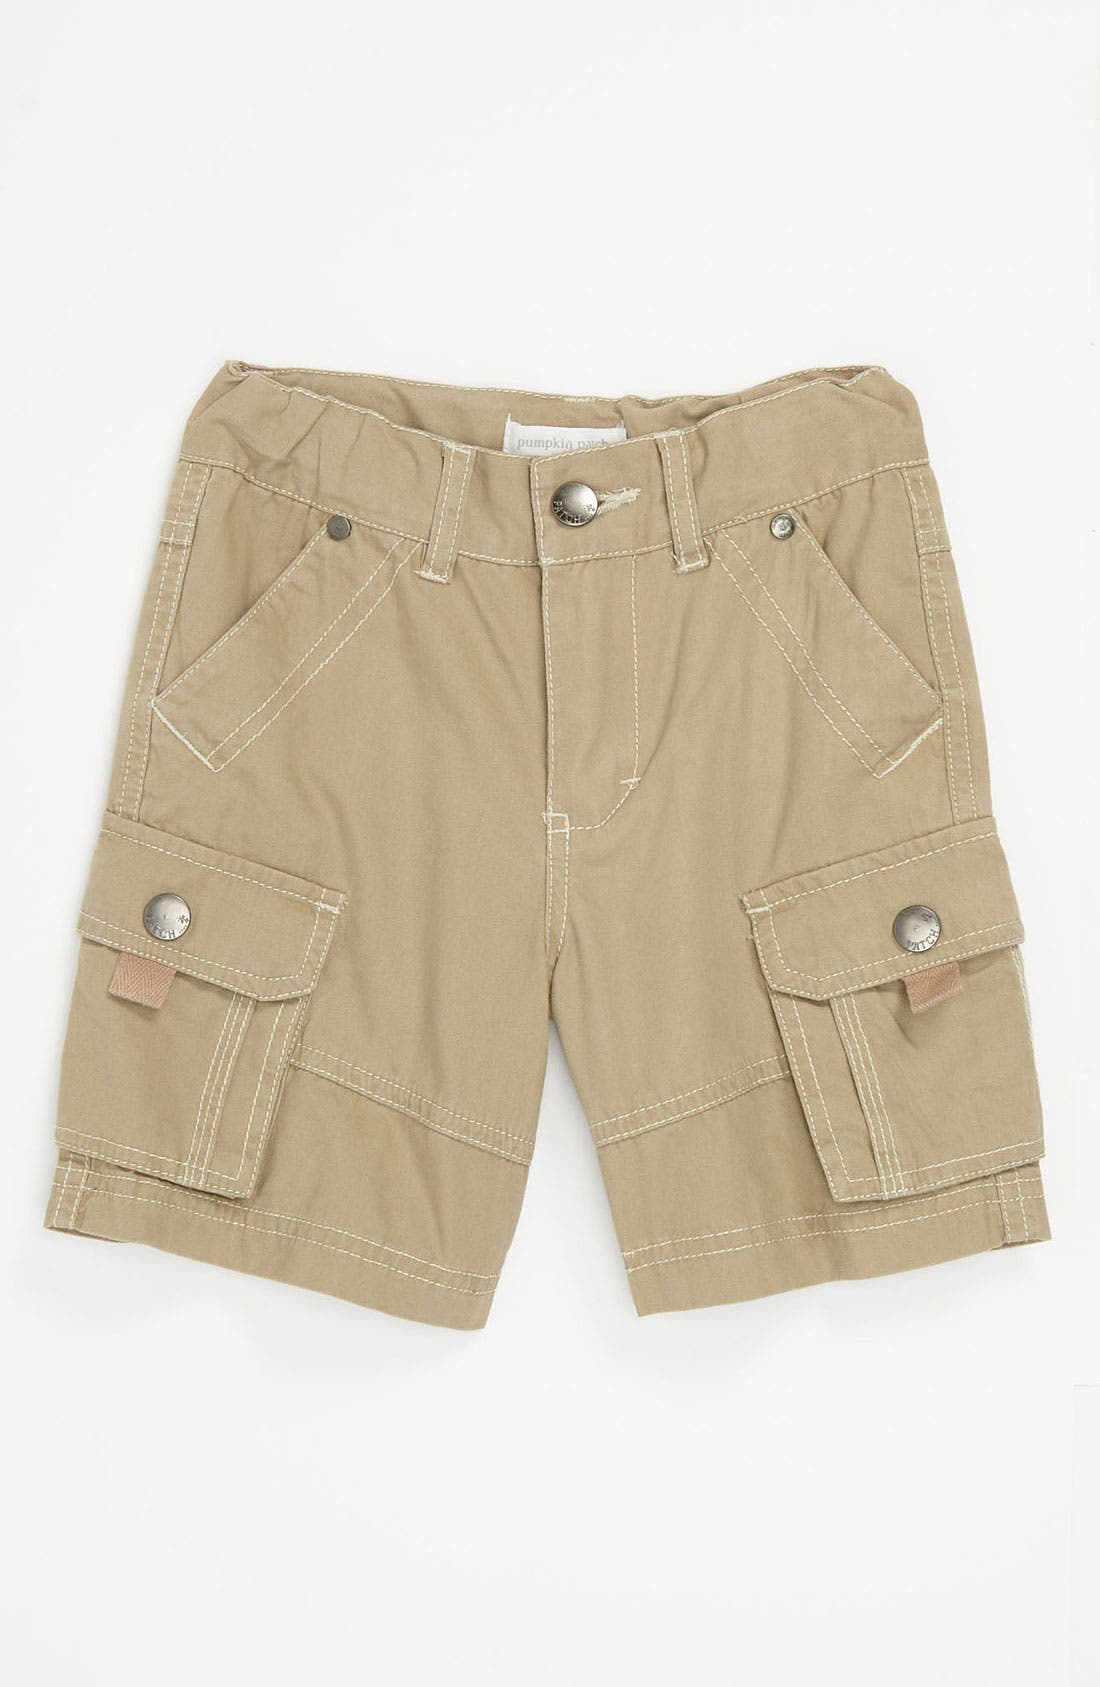 Alternate Image 1 Selected - Pumpkin Patch Canvas Cargo Shorts (Toddler)